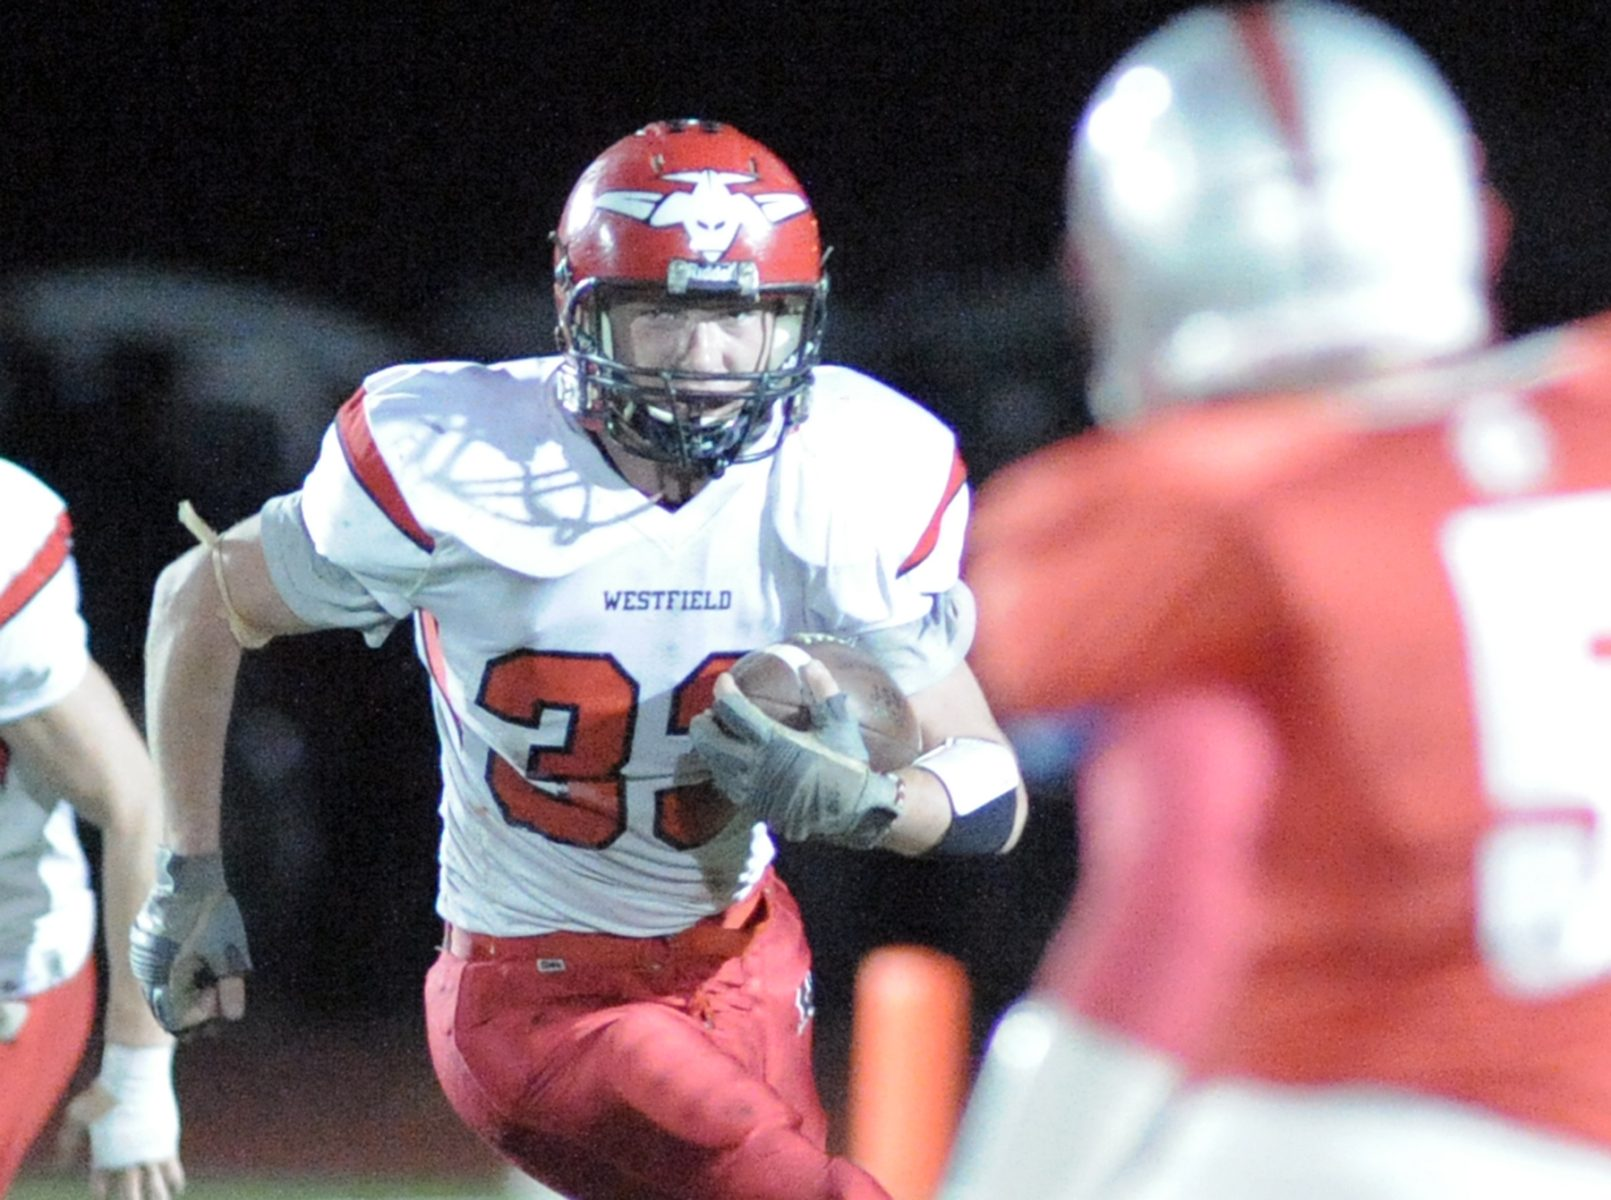 against East Longmeadow Friday night. (Photo by Frederick Gore